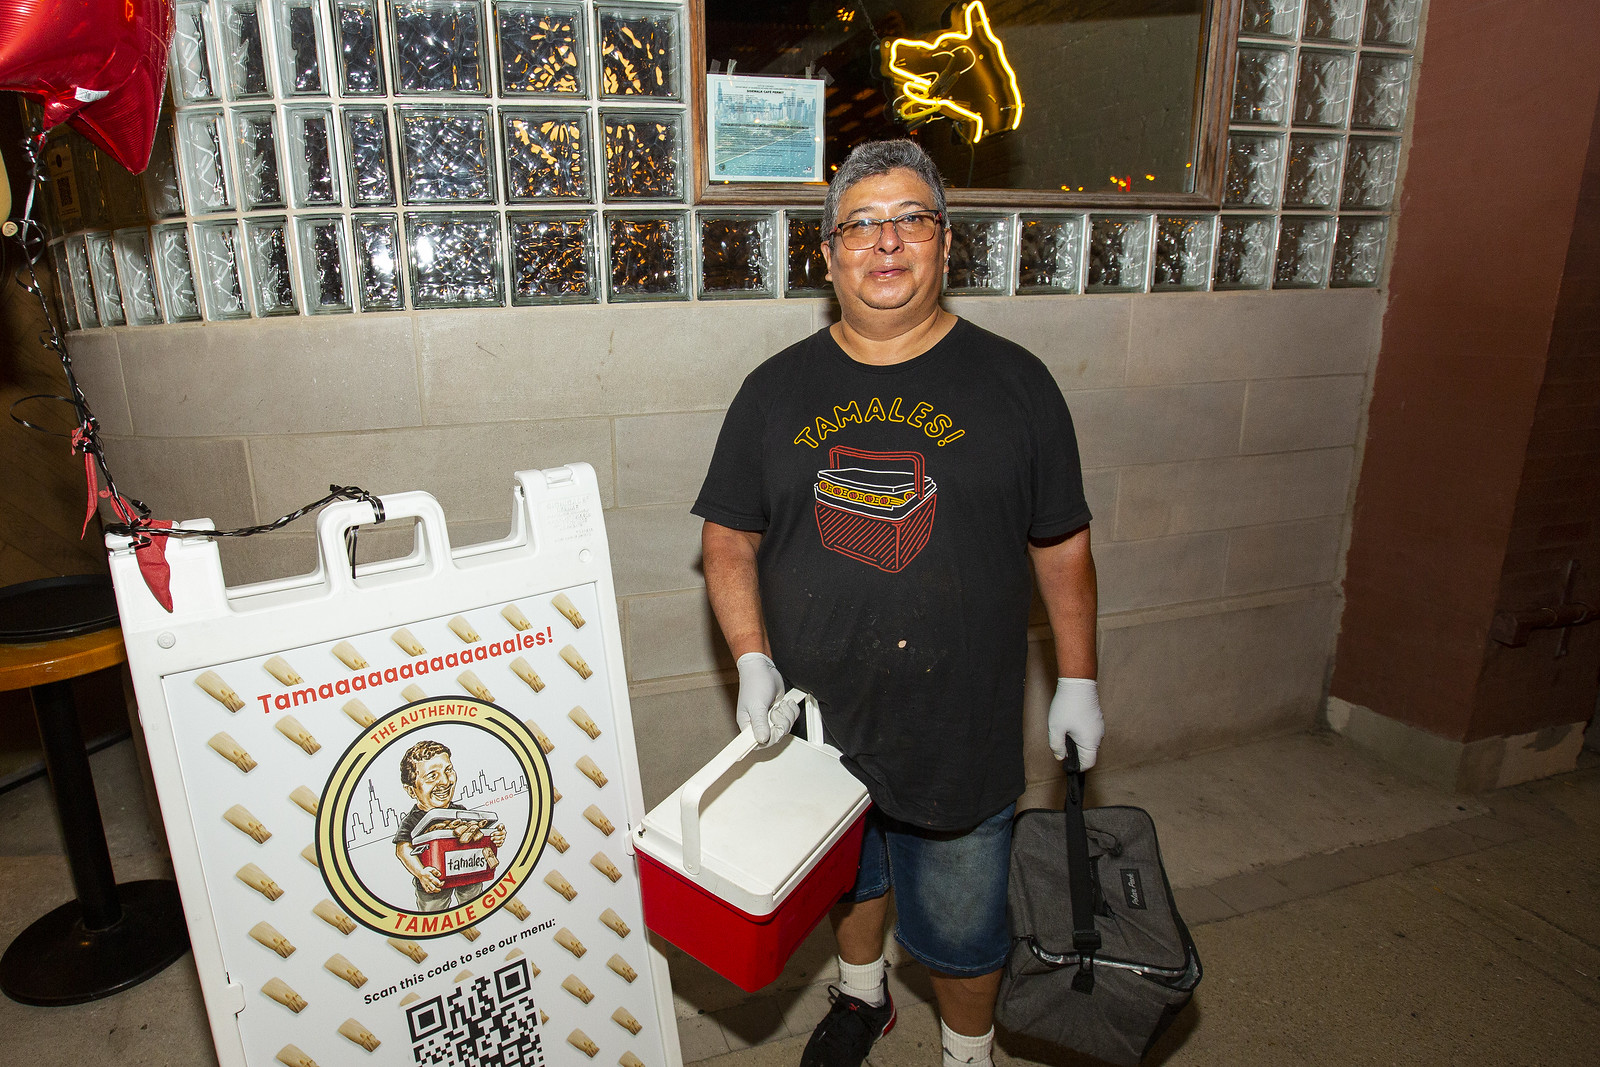 A man holding a red cooler of tamales in black shirt and shorts.